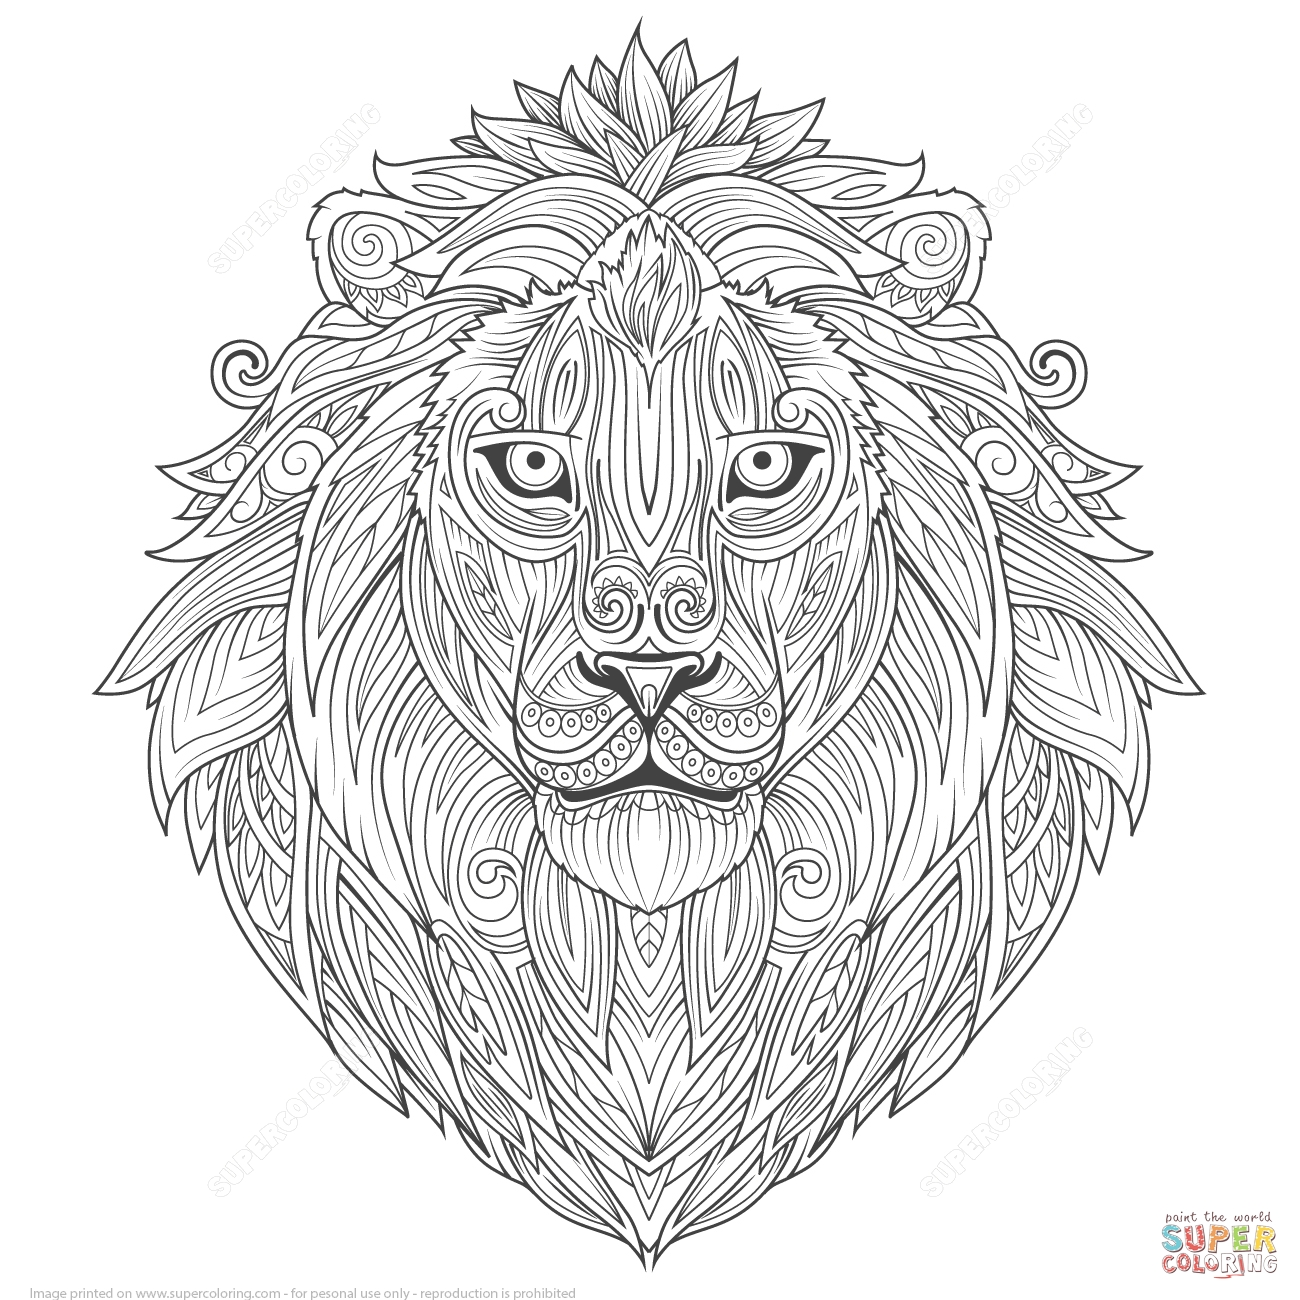 1300x1300 Cool Lion Ethnic Zentangle Coloring Page Free Coloring Pages